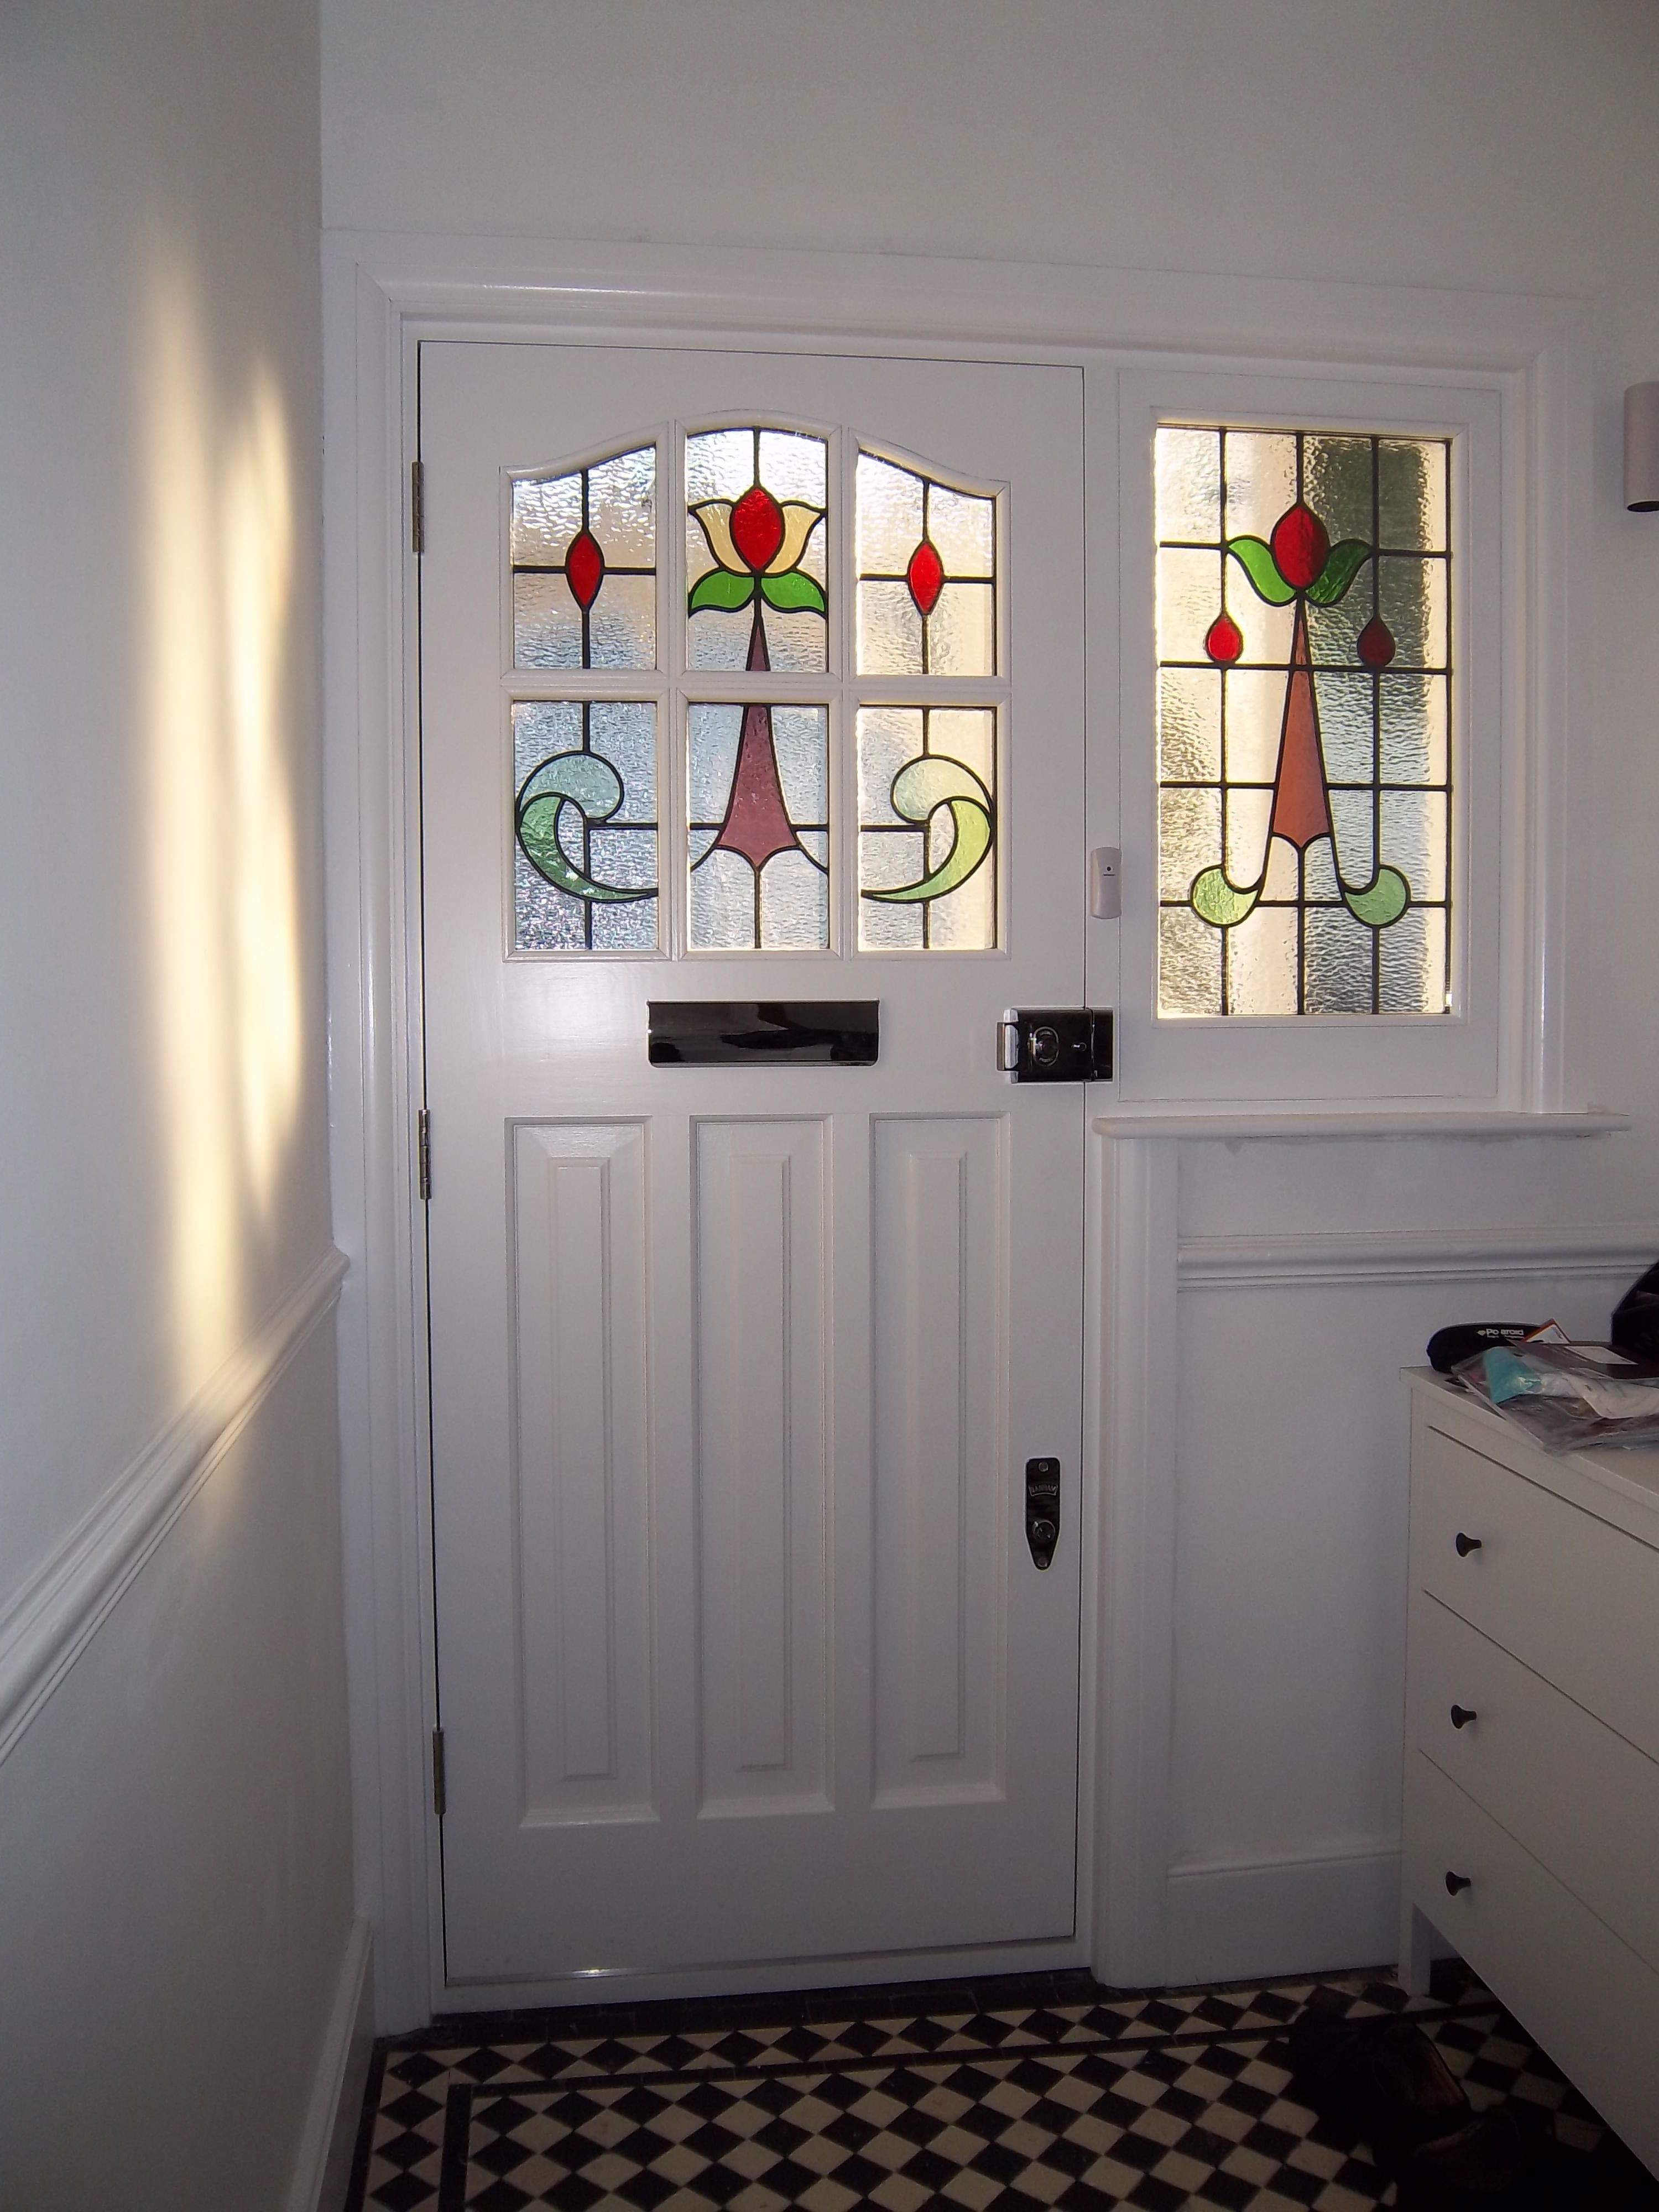 Interesting entry doors with glass also arts and crafts exterior doors - 1930s Door With Stained Glass Design